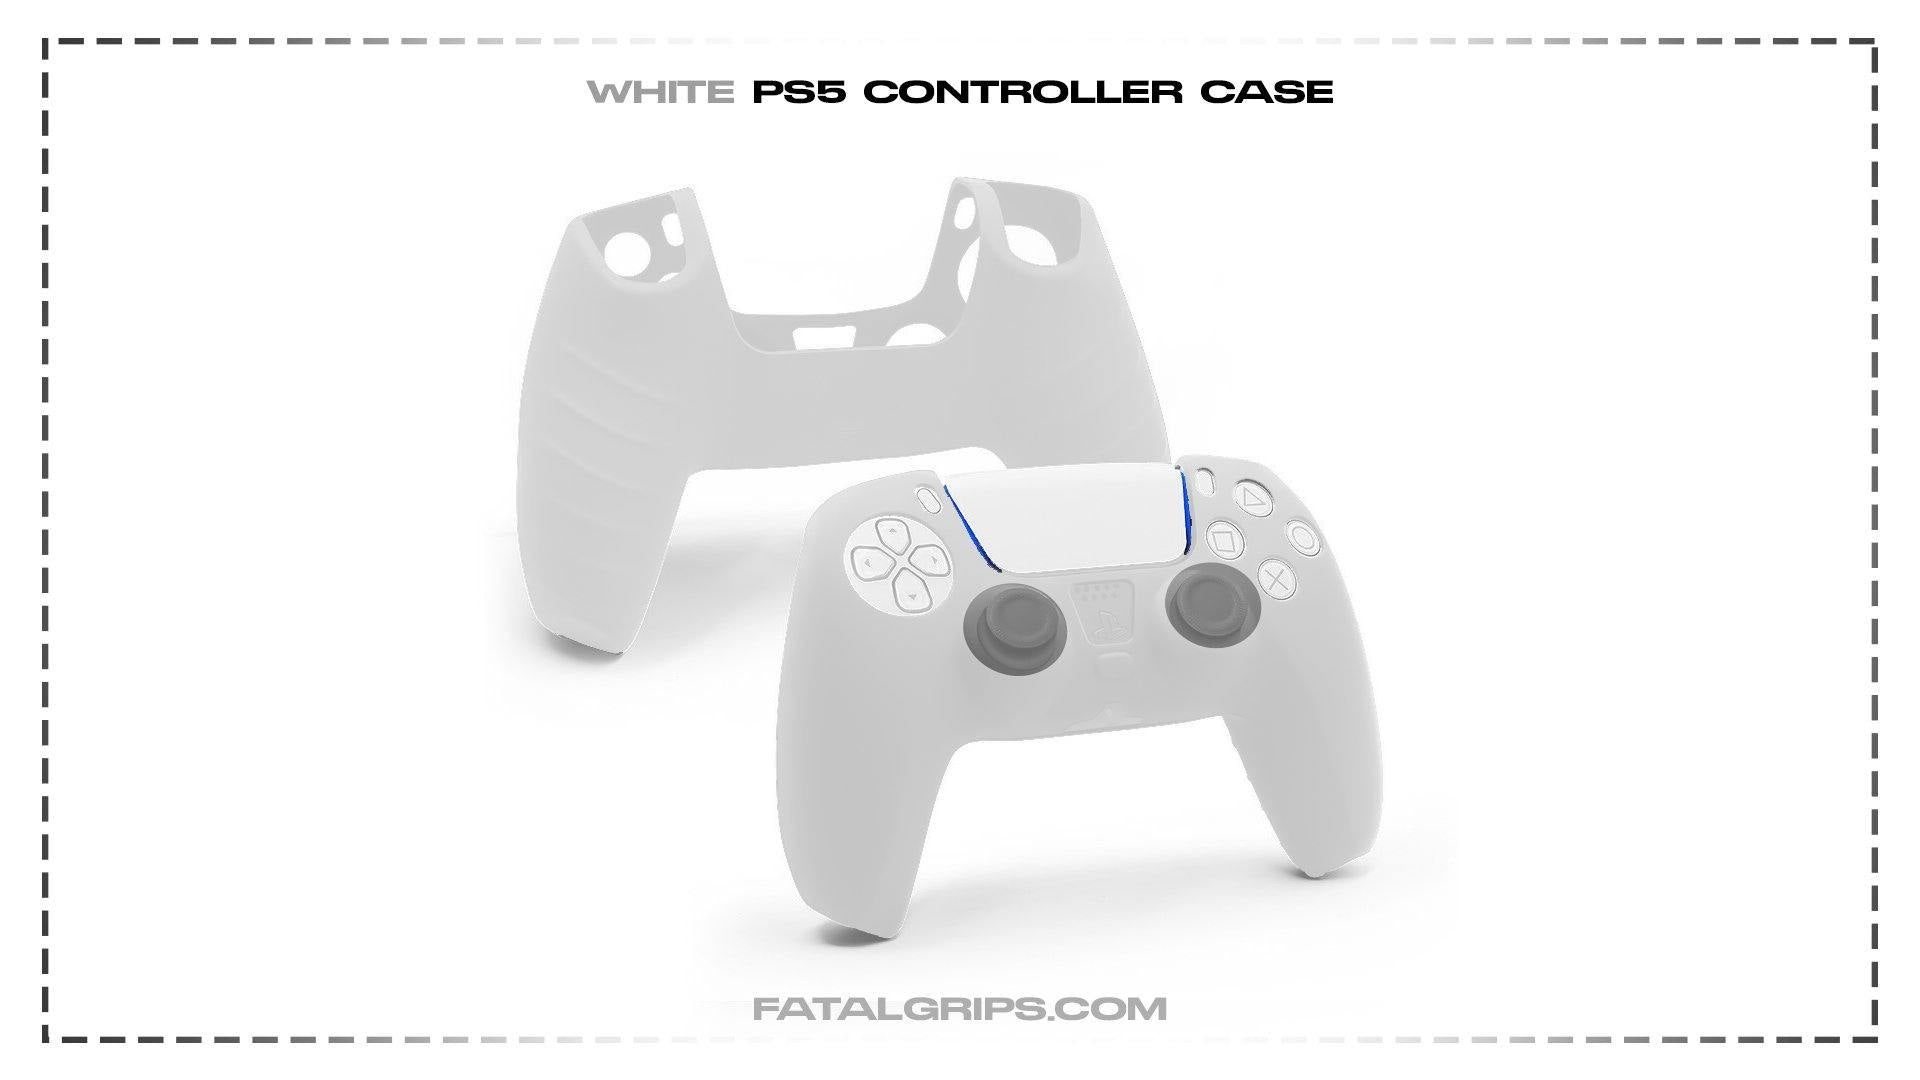 White PS5 Controller Case - Fatal Grips